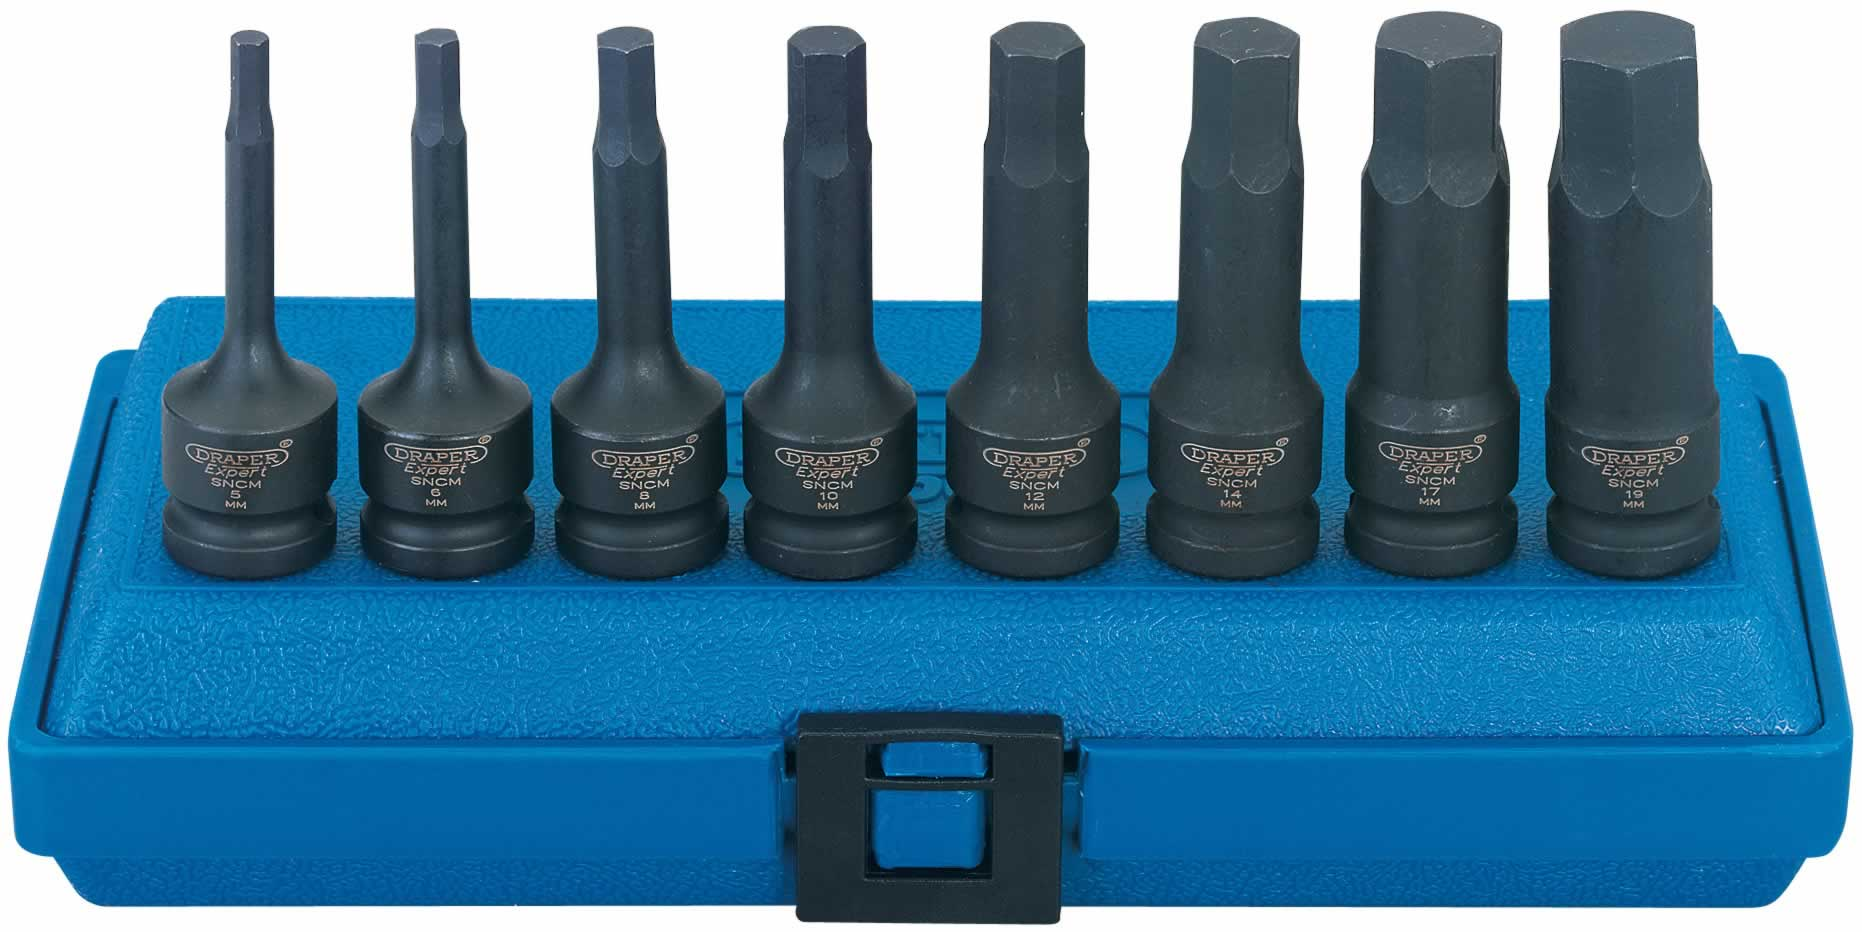 "EXPERT 8 PIECE 1/2"" Sq. Dr. IMPACT HEXAGON SOCKET BIT SET"